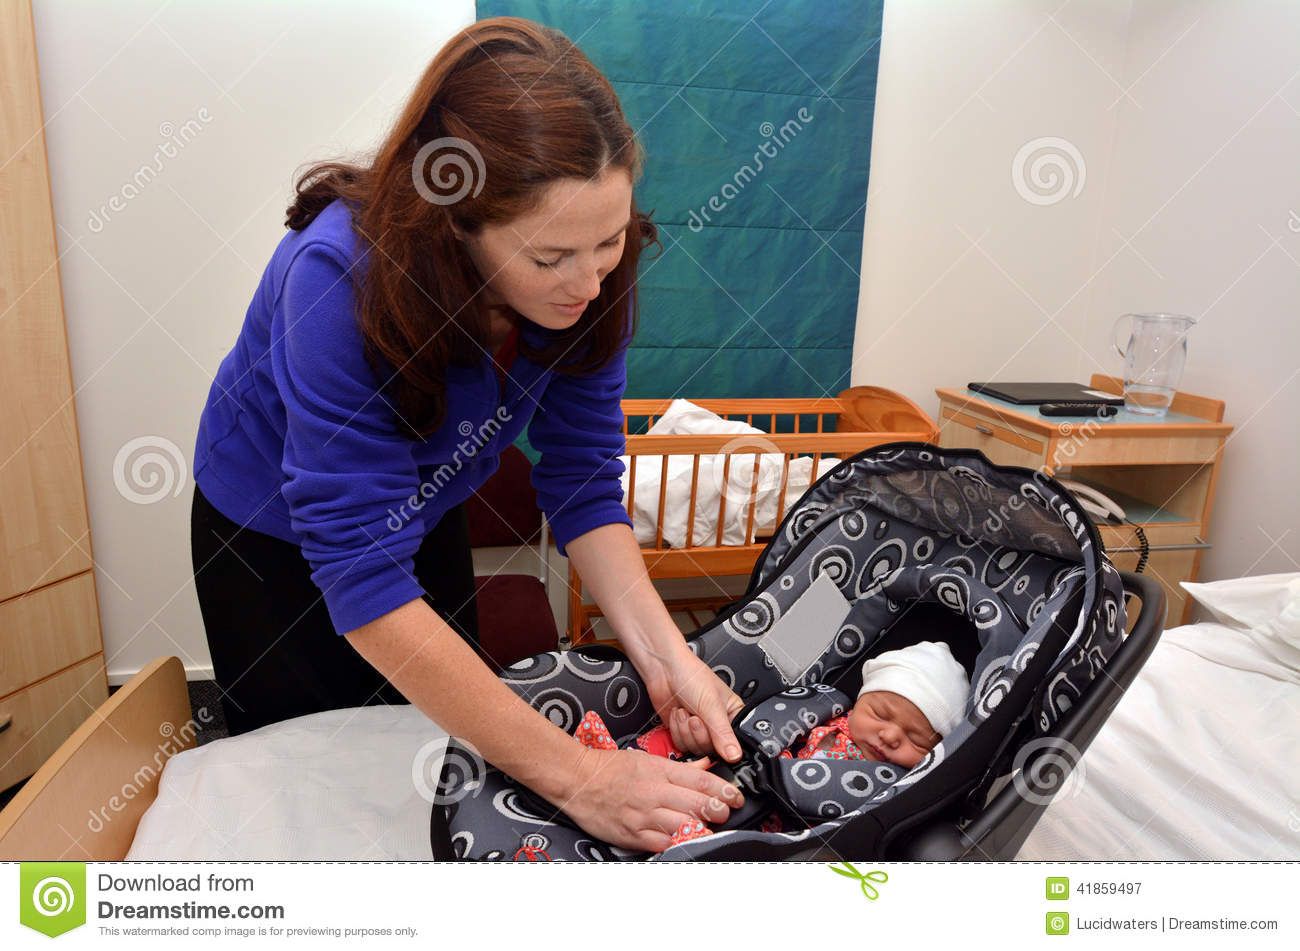 00079043430070 together with Photo Stock Bb Nouveau N Rentrant La Maison De L H Pital Image41859497 also Baby Question Mark likewise Autism Head Lag And The Core Of Wellbeing in addition Baby. on newborn babies in car seats